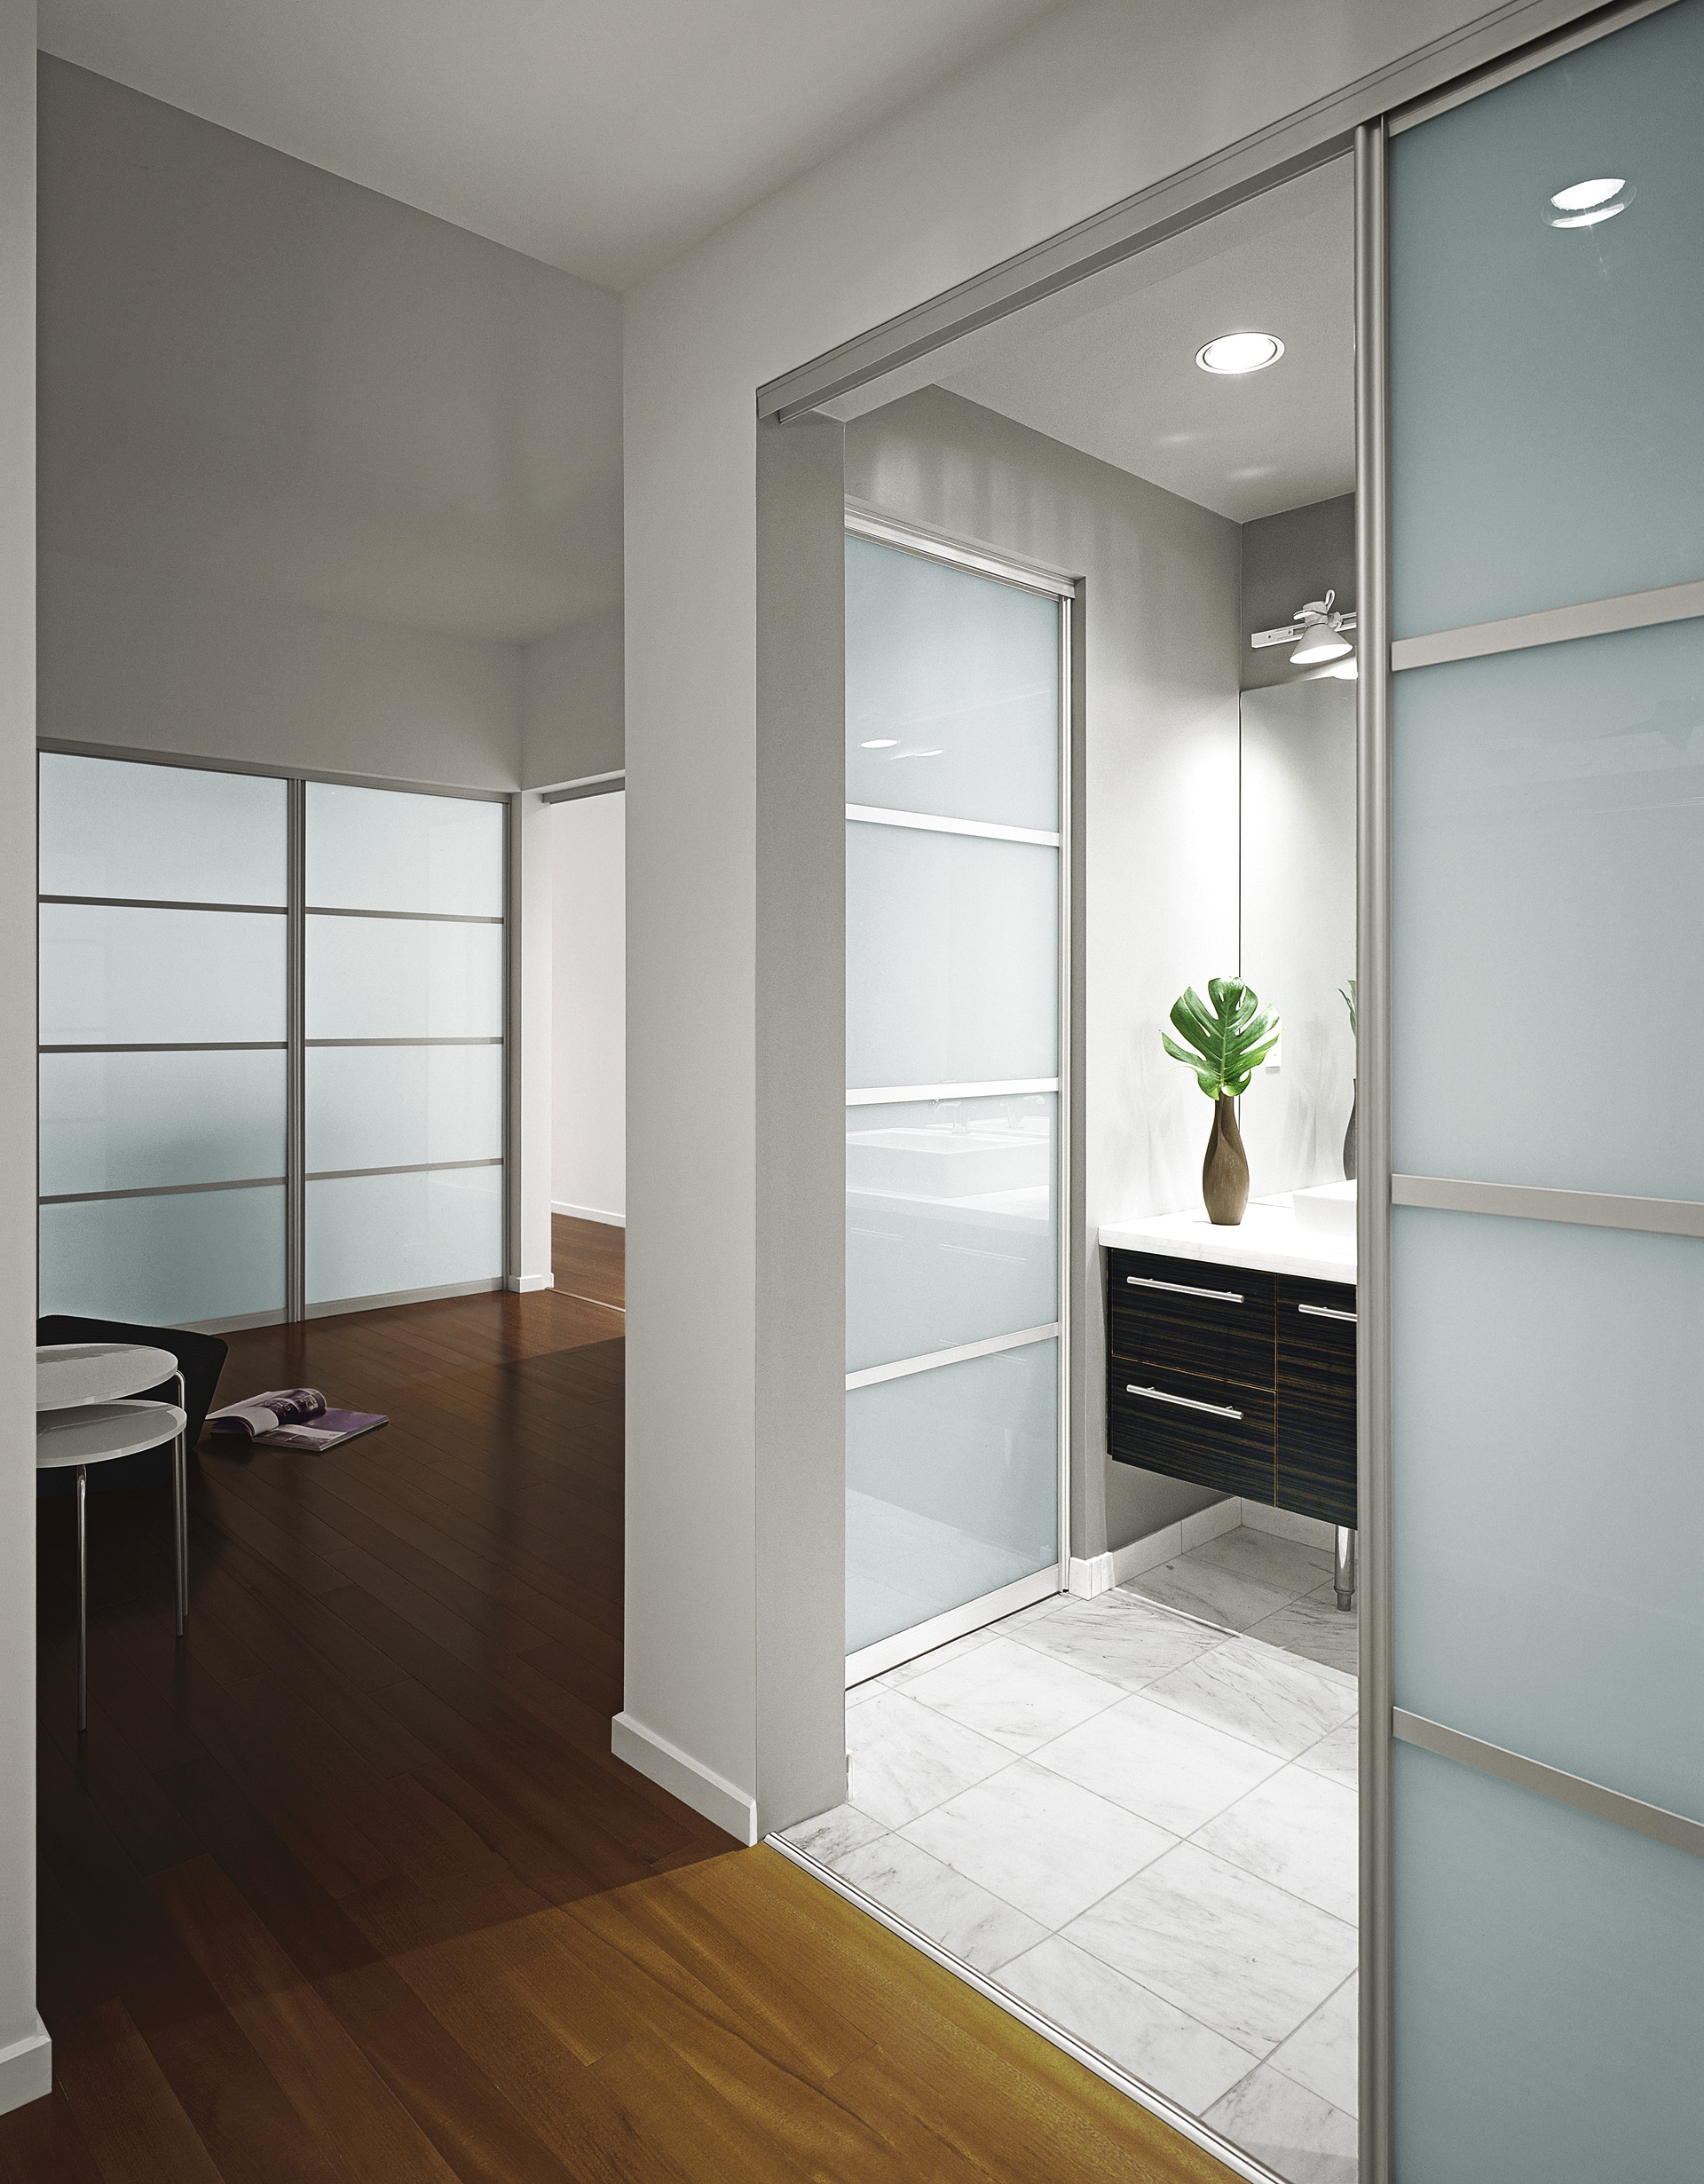 Permalink to Bathroom Doors Dividers